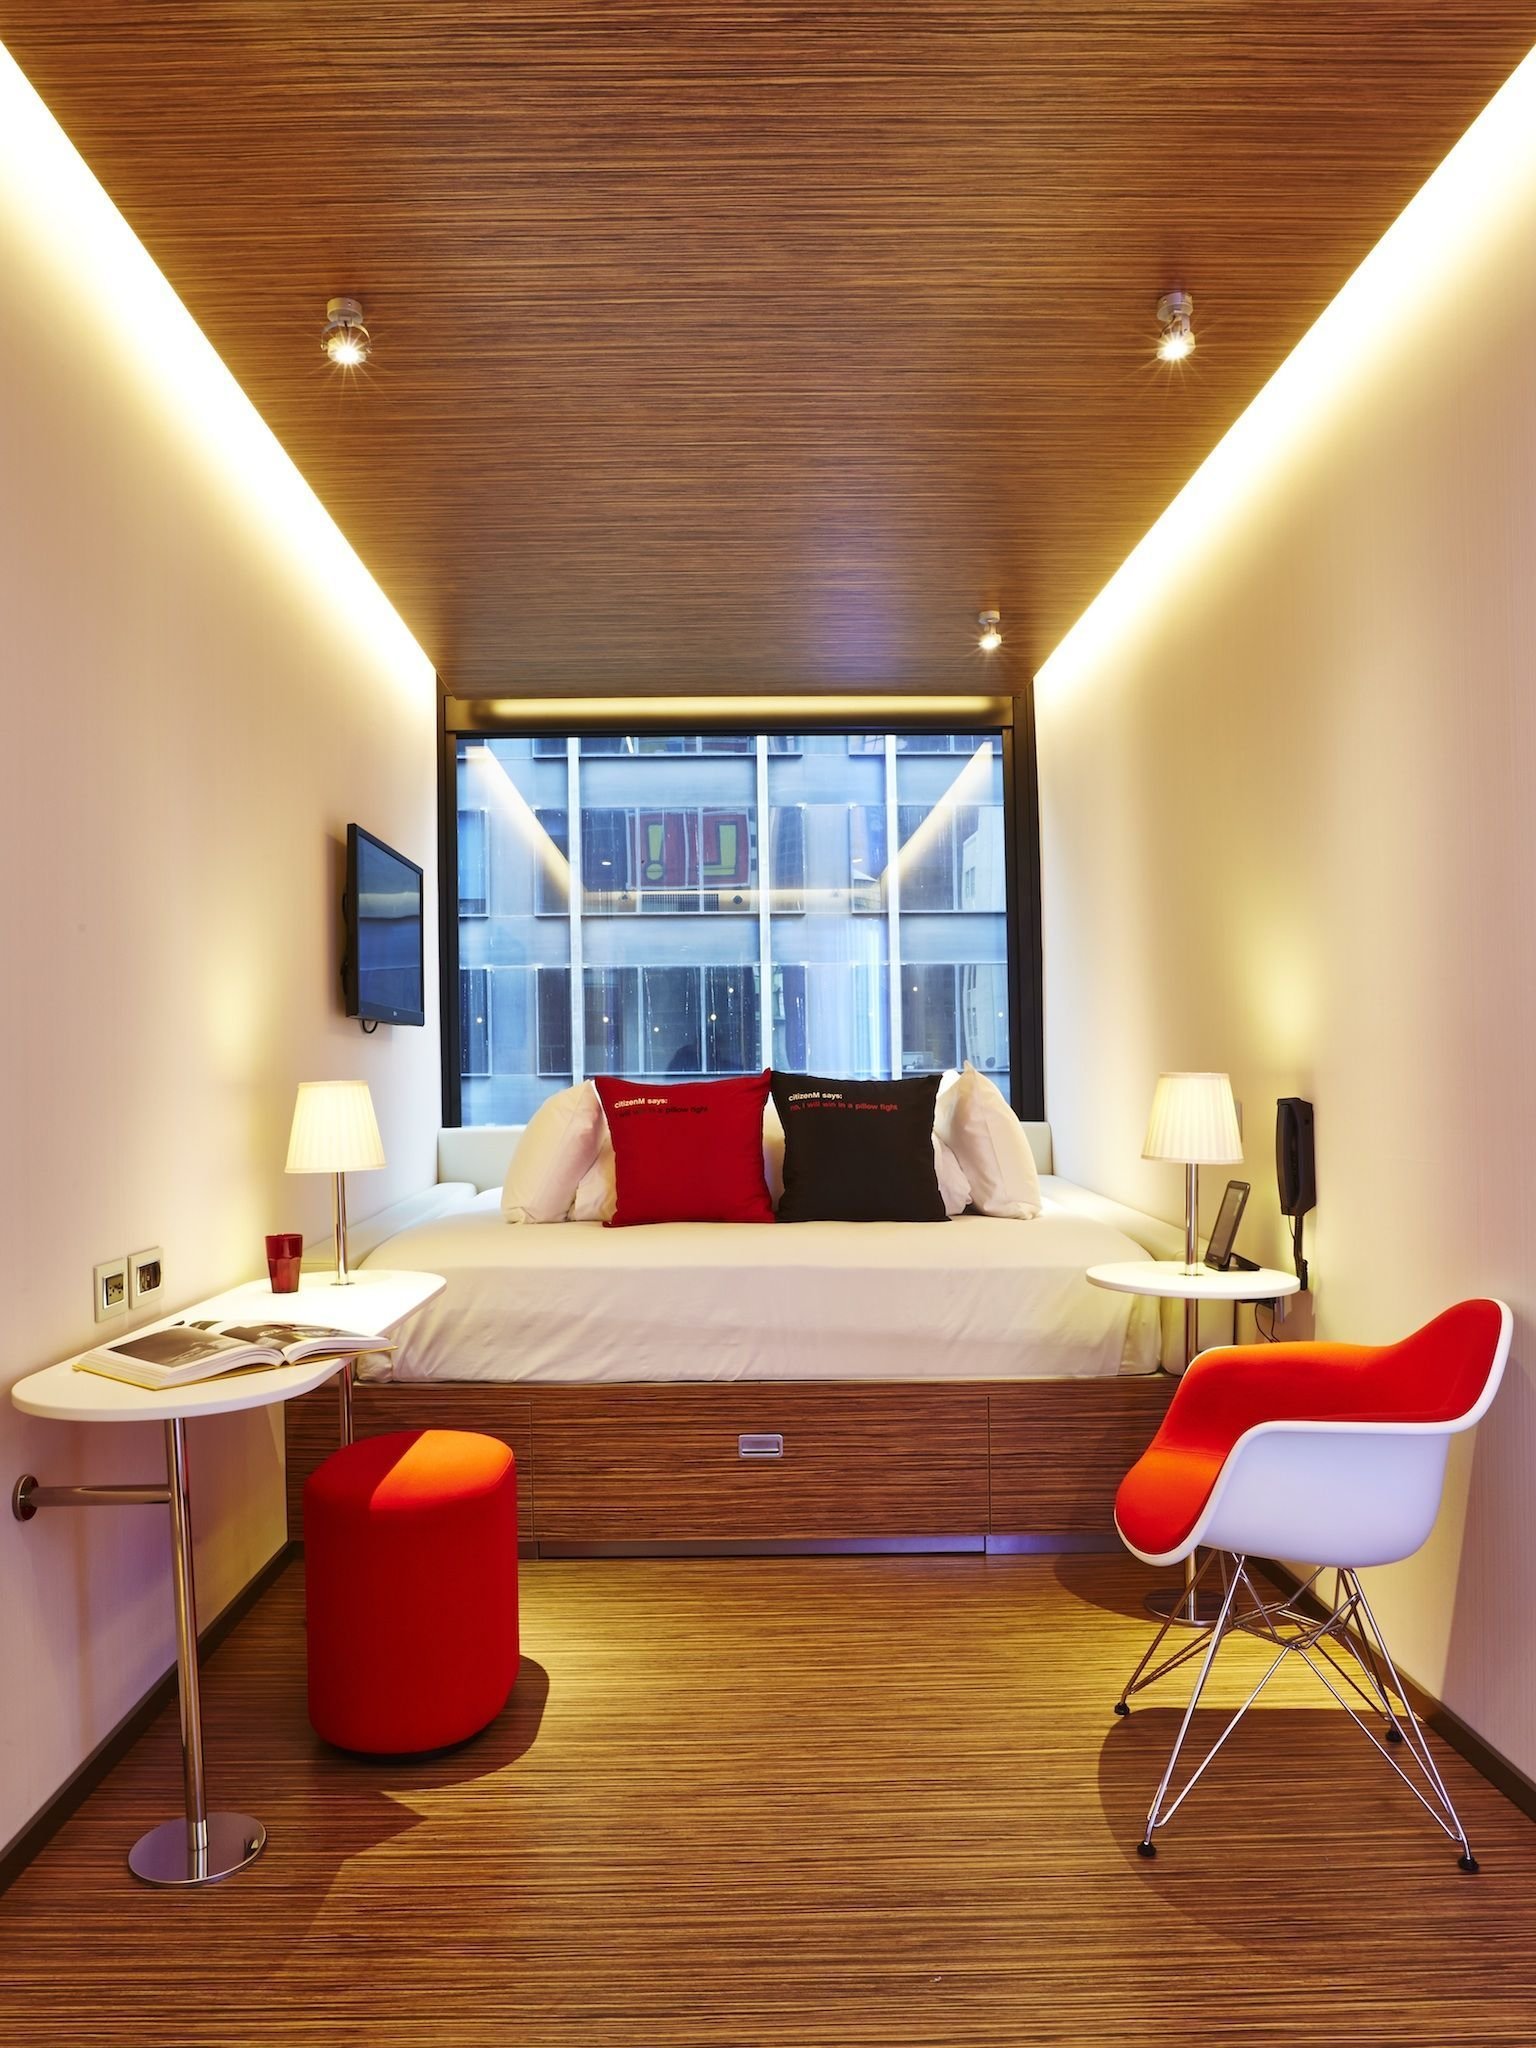 Best Cozy Or Claustrophobic The Smallest Hotel Rooms In The With Pictures